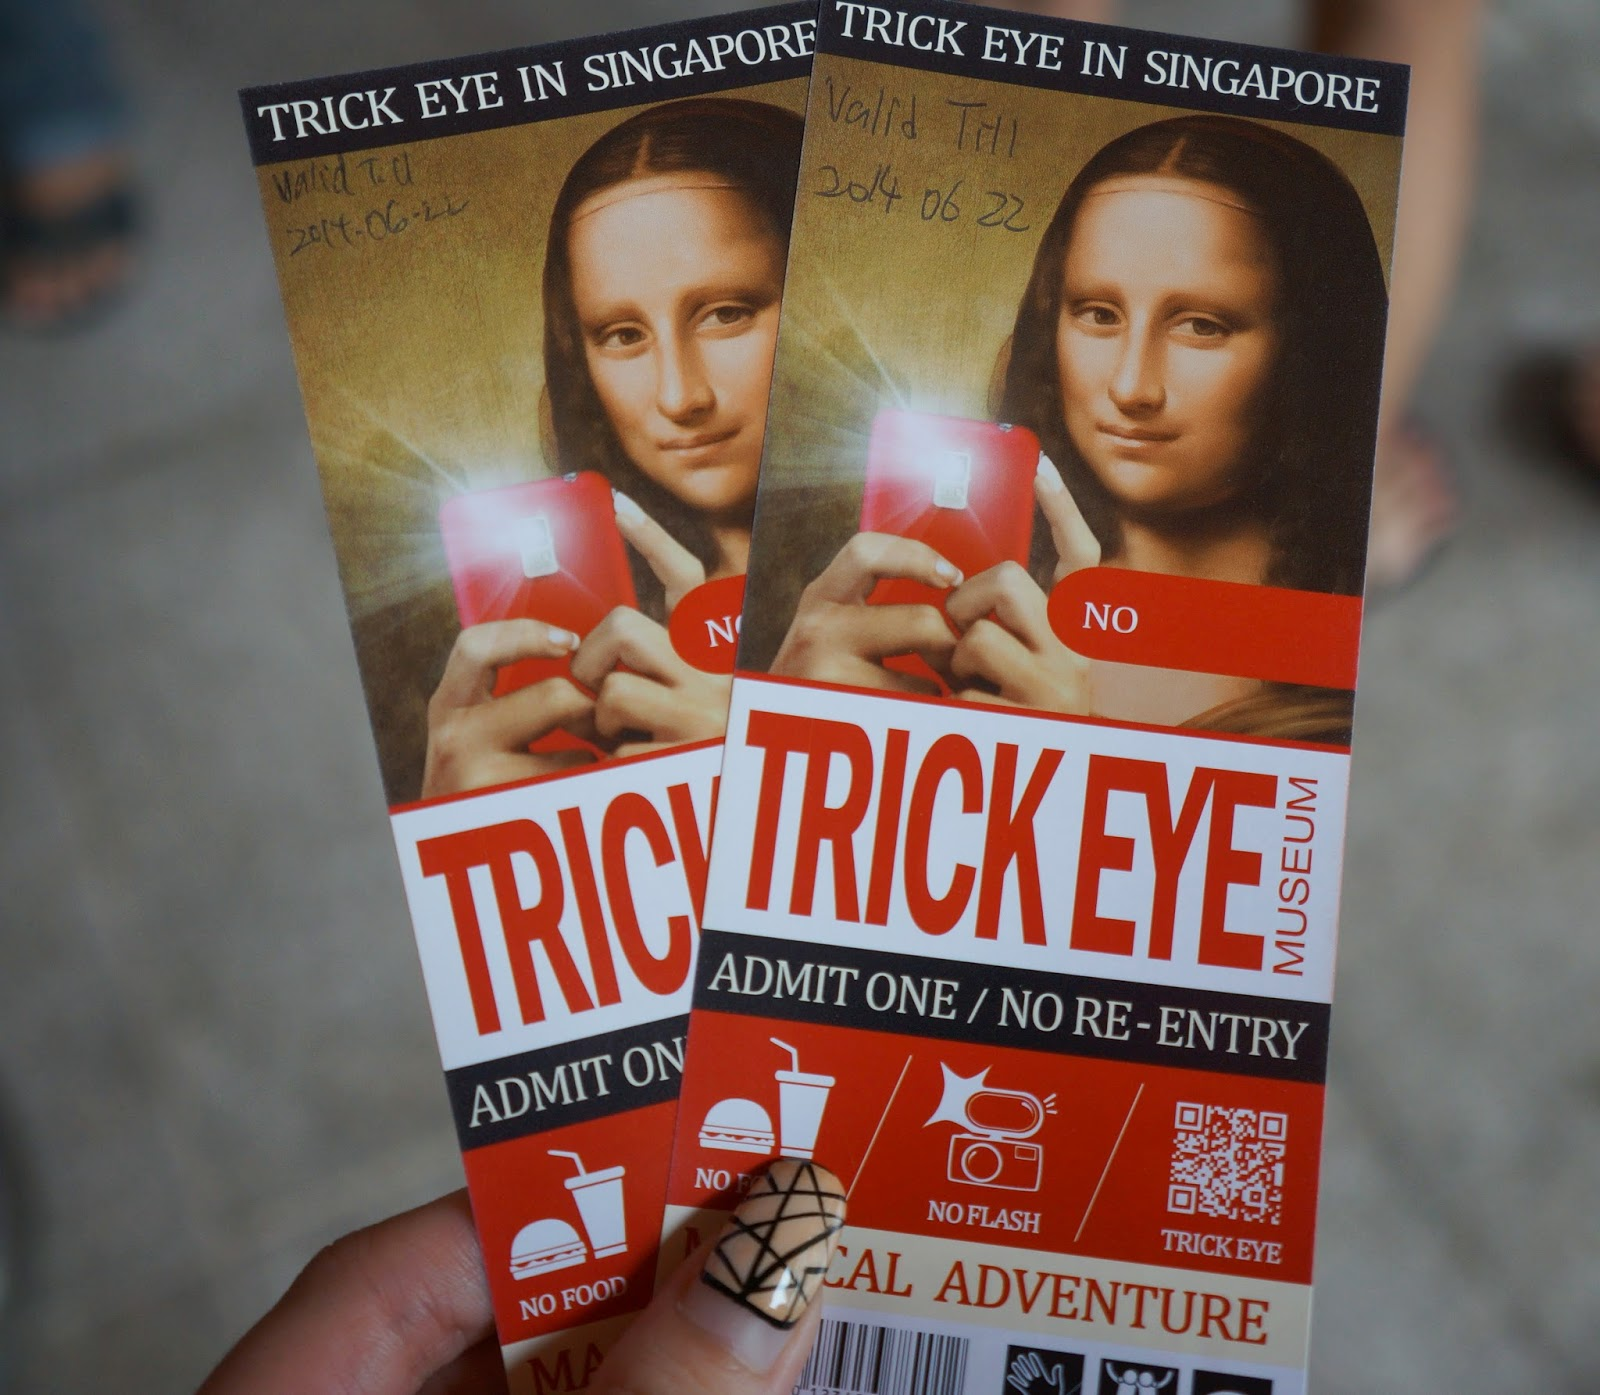 Joannelummz Babys 26th Trick Eye Museum Tiket Trickeye Singapore And Theres 50 Off Per Tickets So Its Like Paying 1 For 2pax